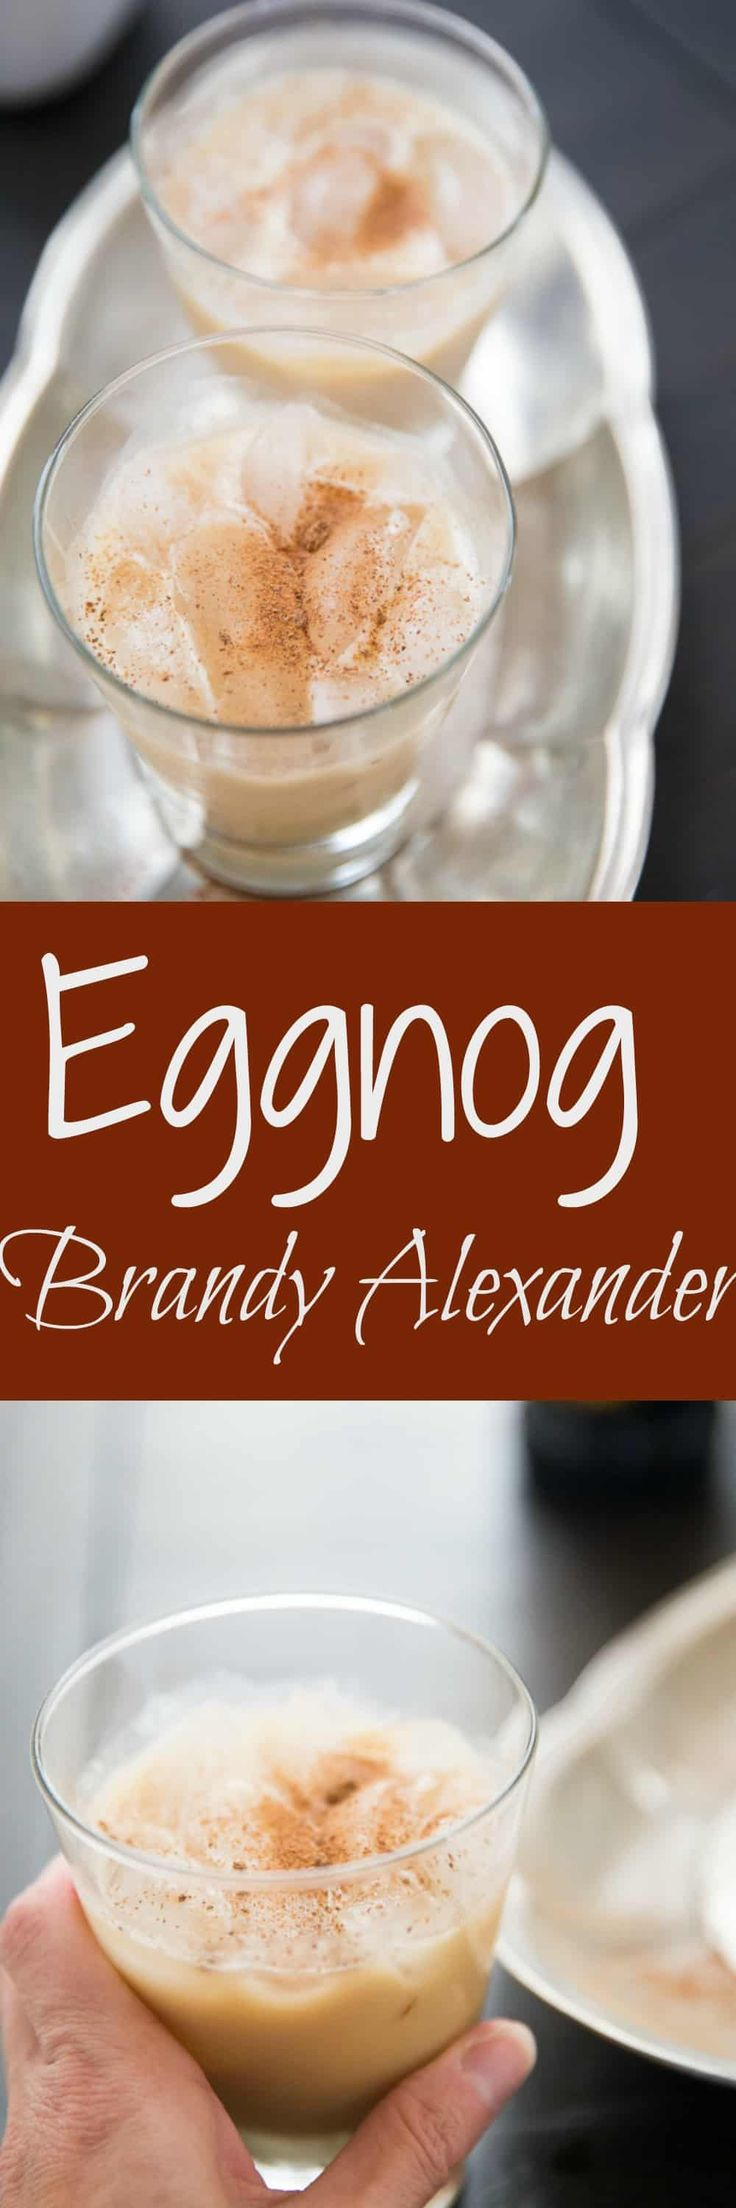 Creamy eggnog makes this brandy alexander recipe perfect for the season.  This cocktail has a little sweet and a little spice in every sip! via @Lemonsforlulu